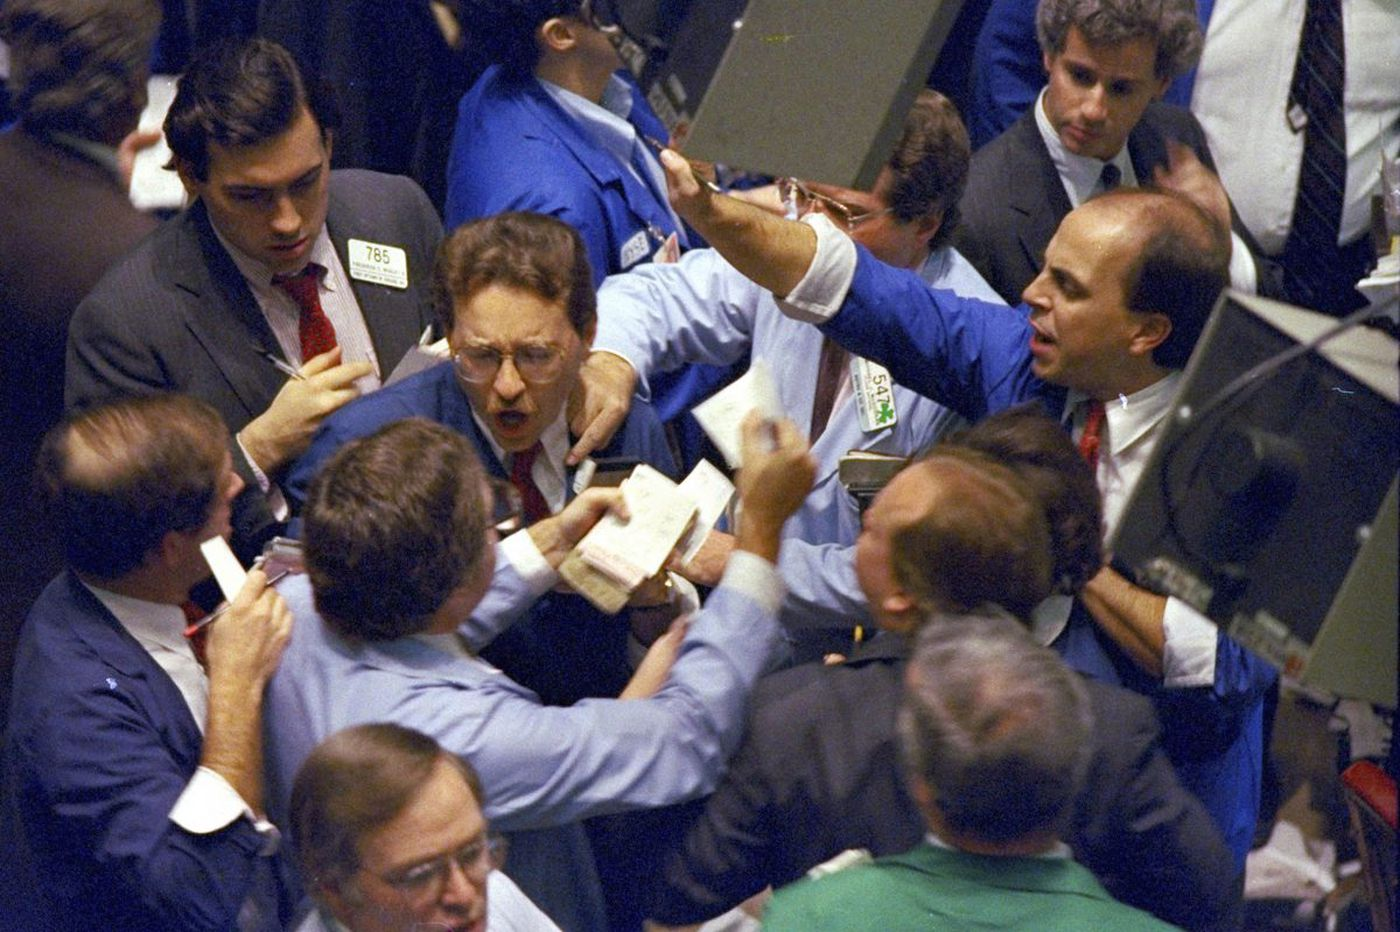 A 1987-style Wall St. crash? In 2017, that's a one-day stock market drop of 5,060 points